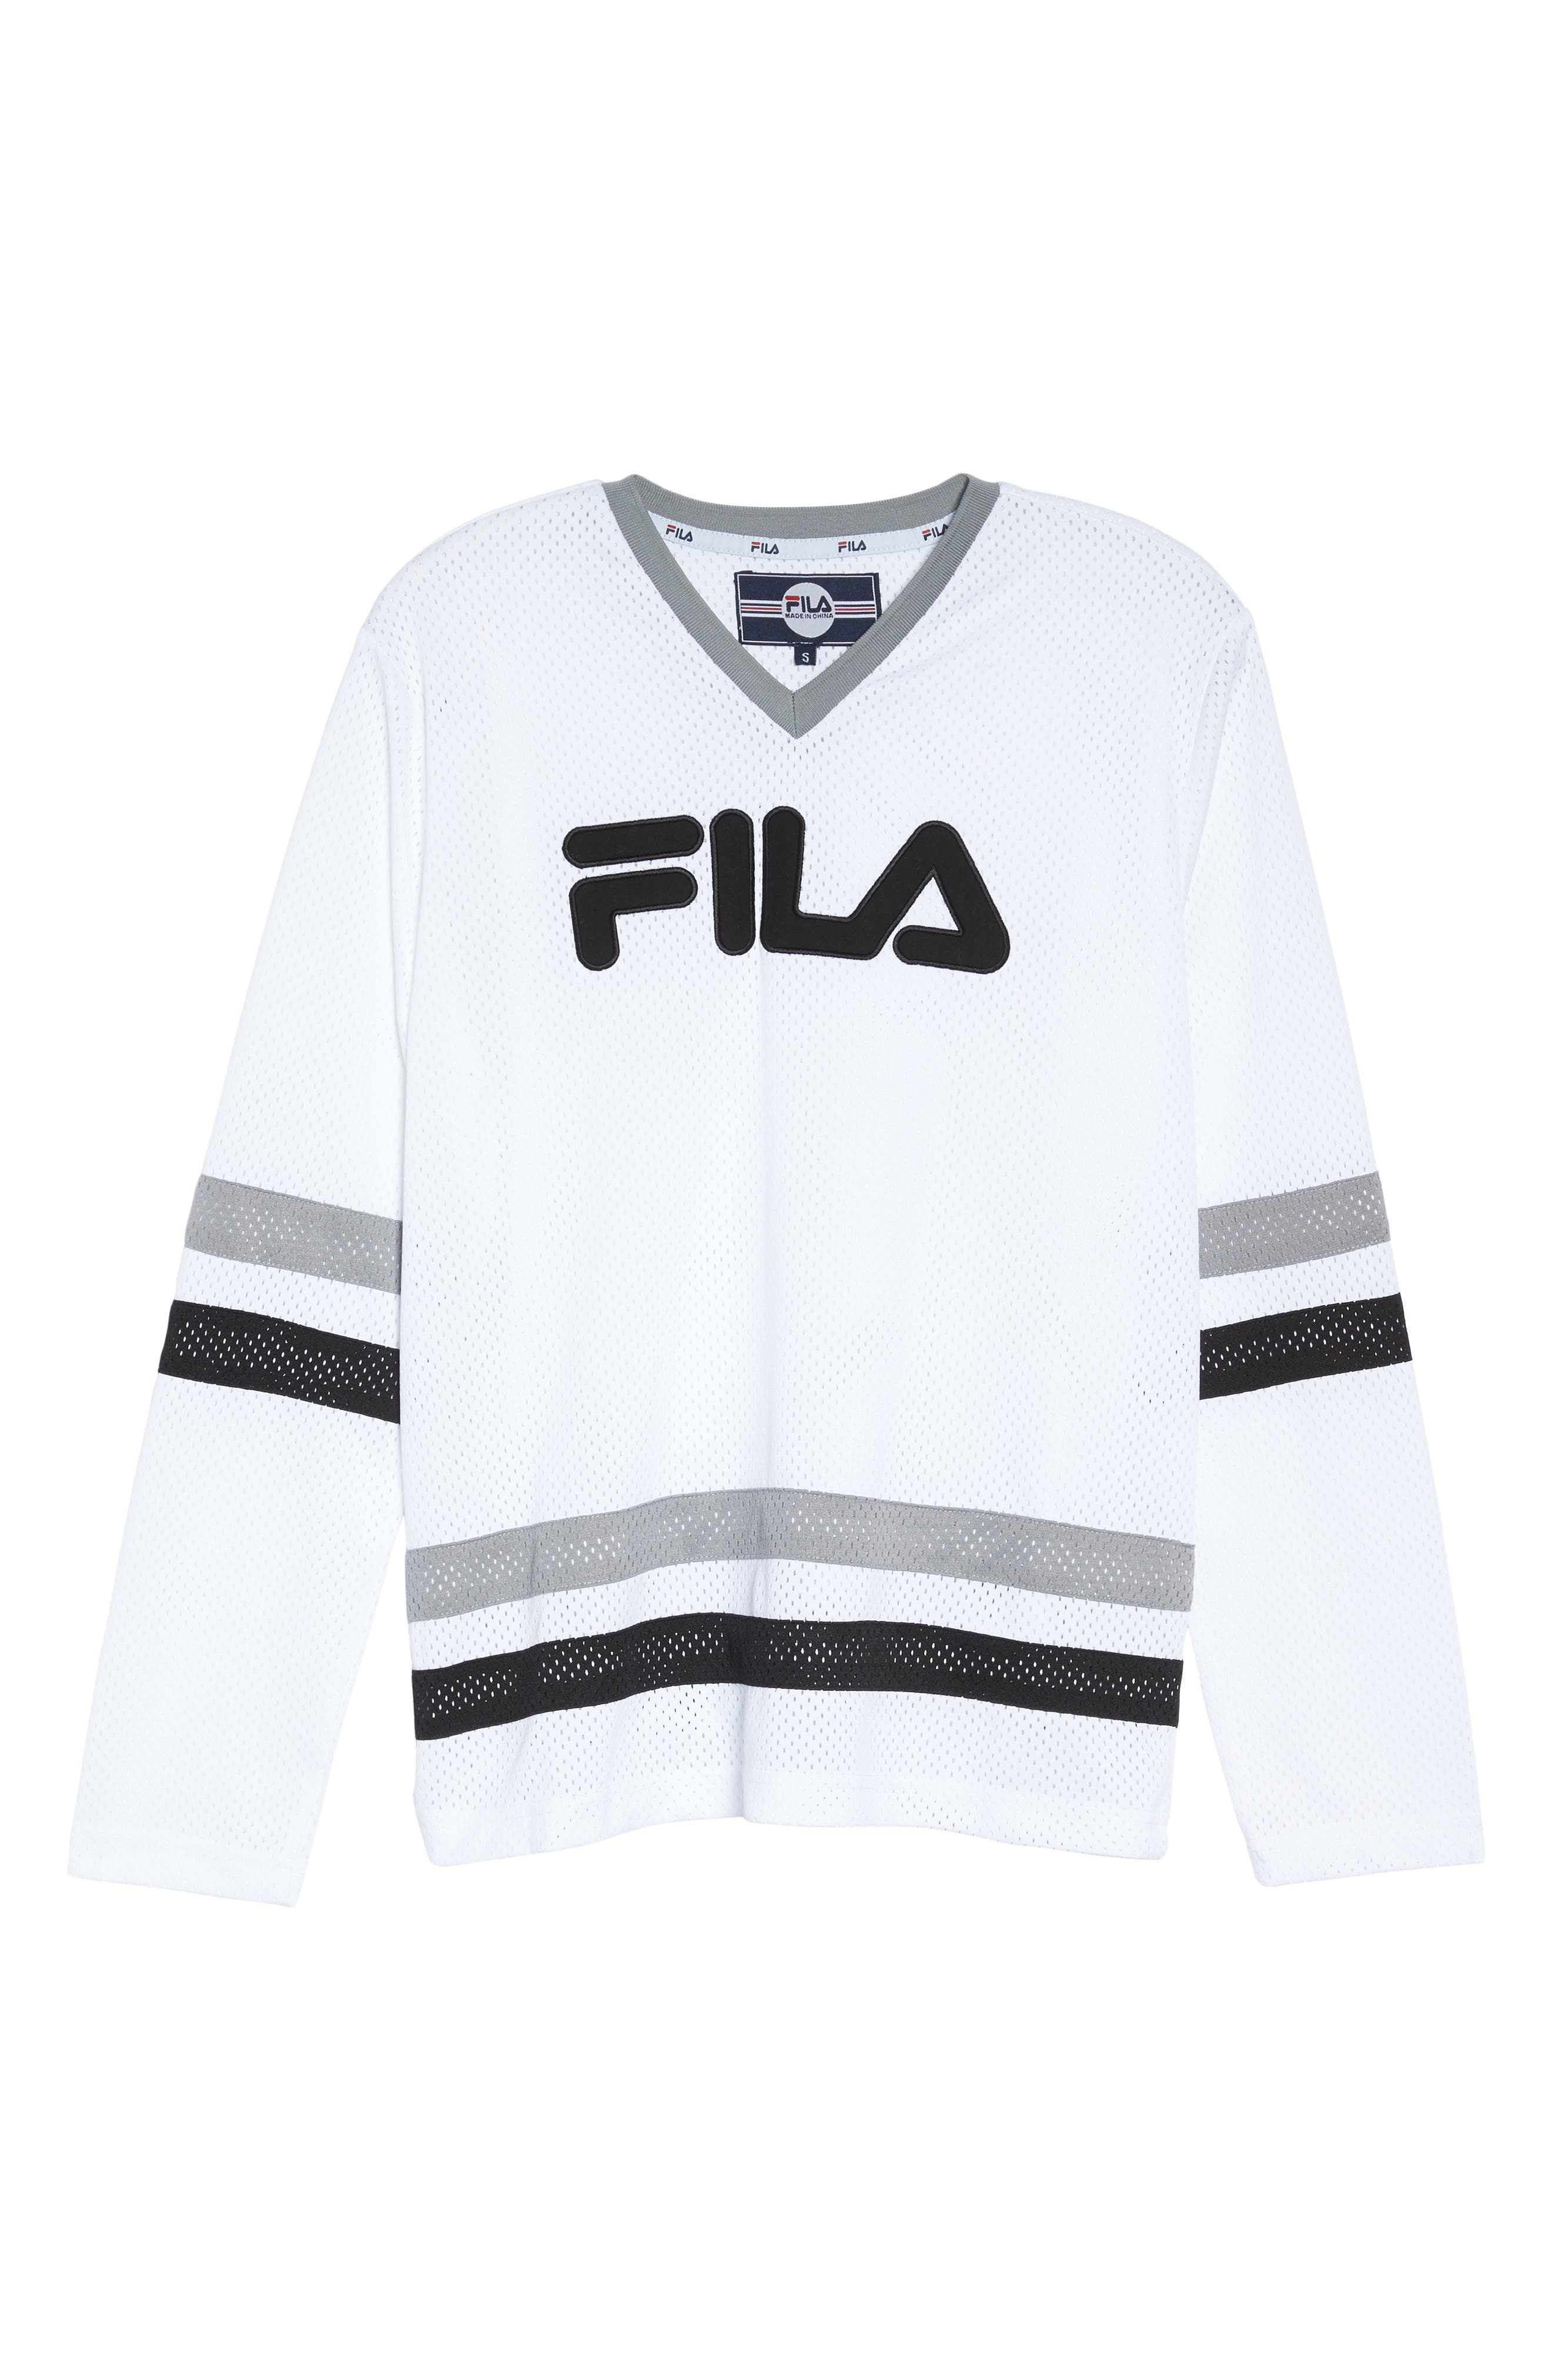 Tanya Hockey Jersey,                             Alternate thumbnail 7, color,                             White/ Black/ Silver Dollar